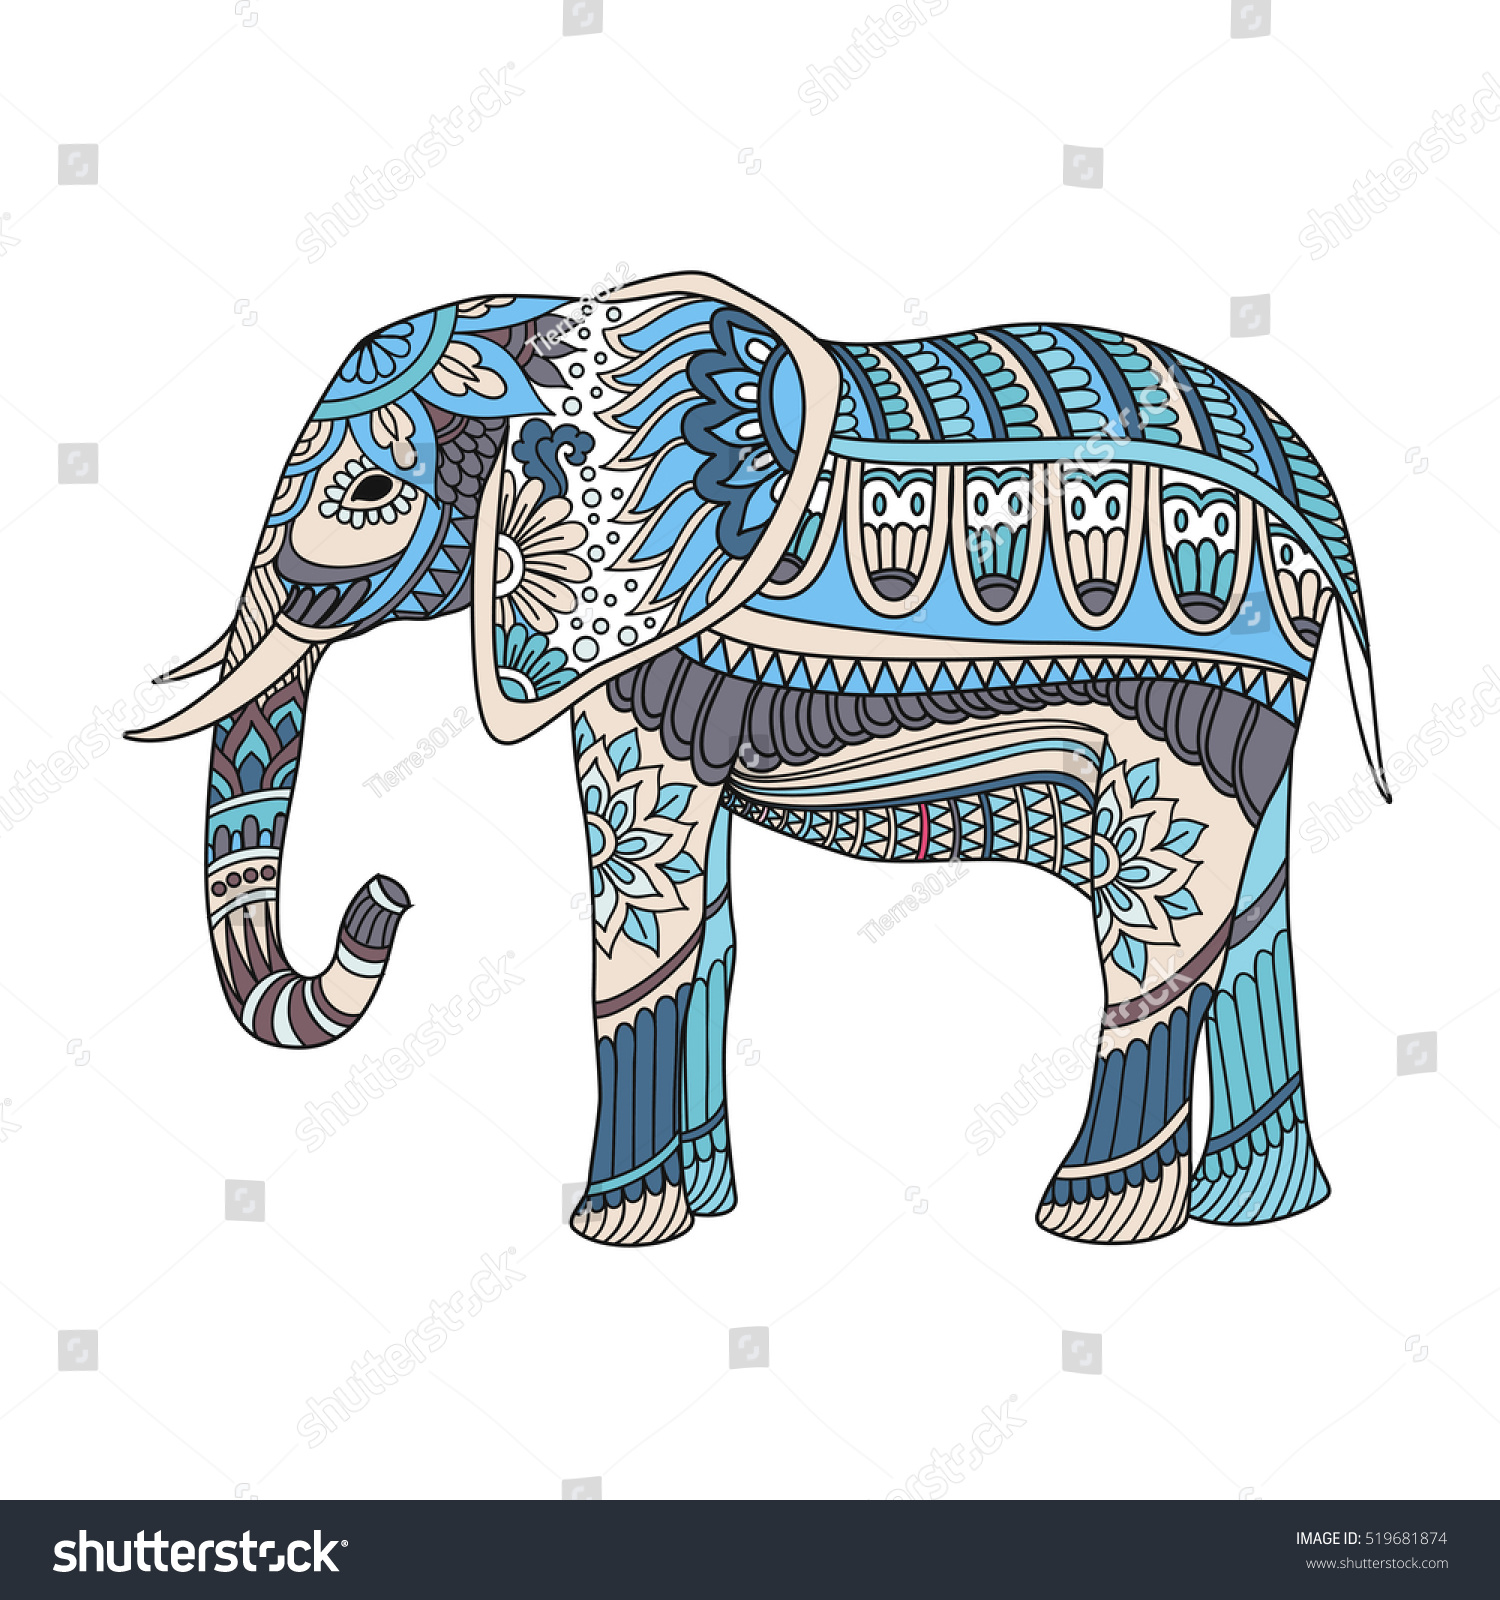 Indian Elephant In Traditional Asian Style Ornate On Lace Background For Coloring Page Design